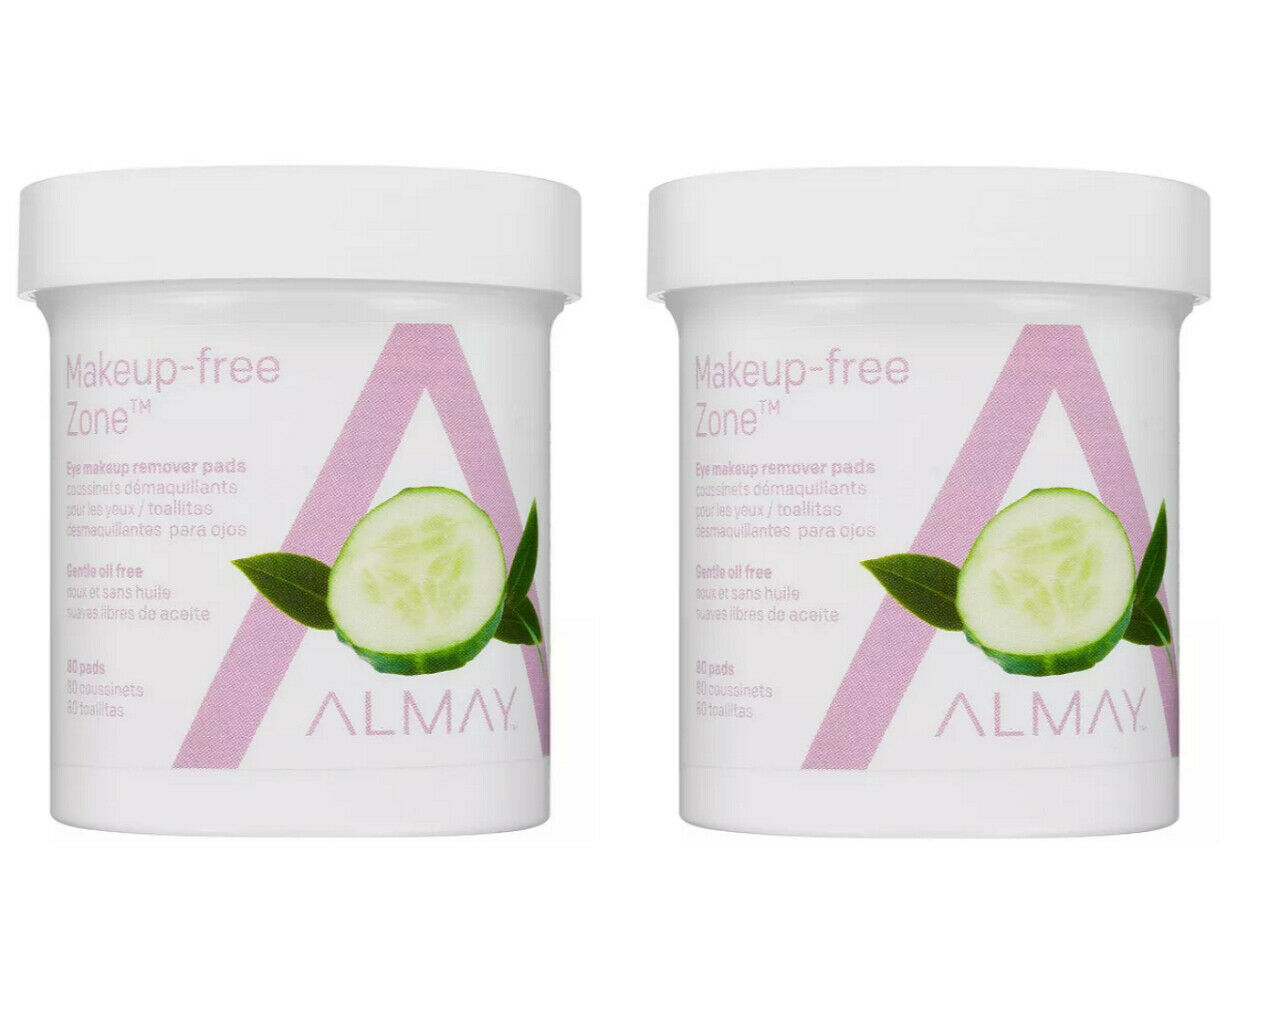 2 x Almay Eye Makeup Remover Pads, Gentle Oil-Free 80 pads e